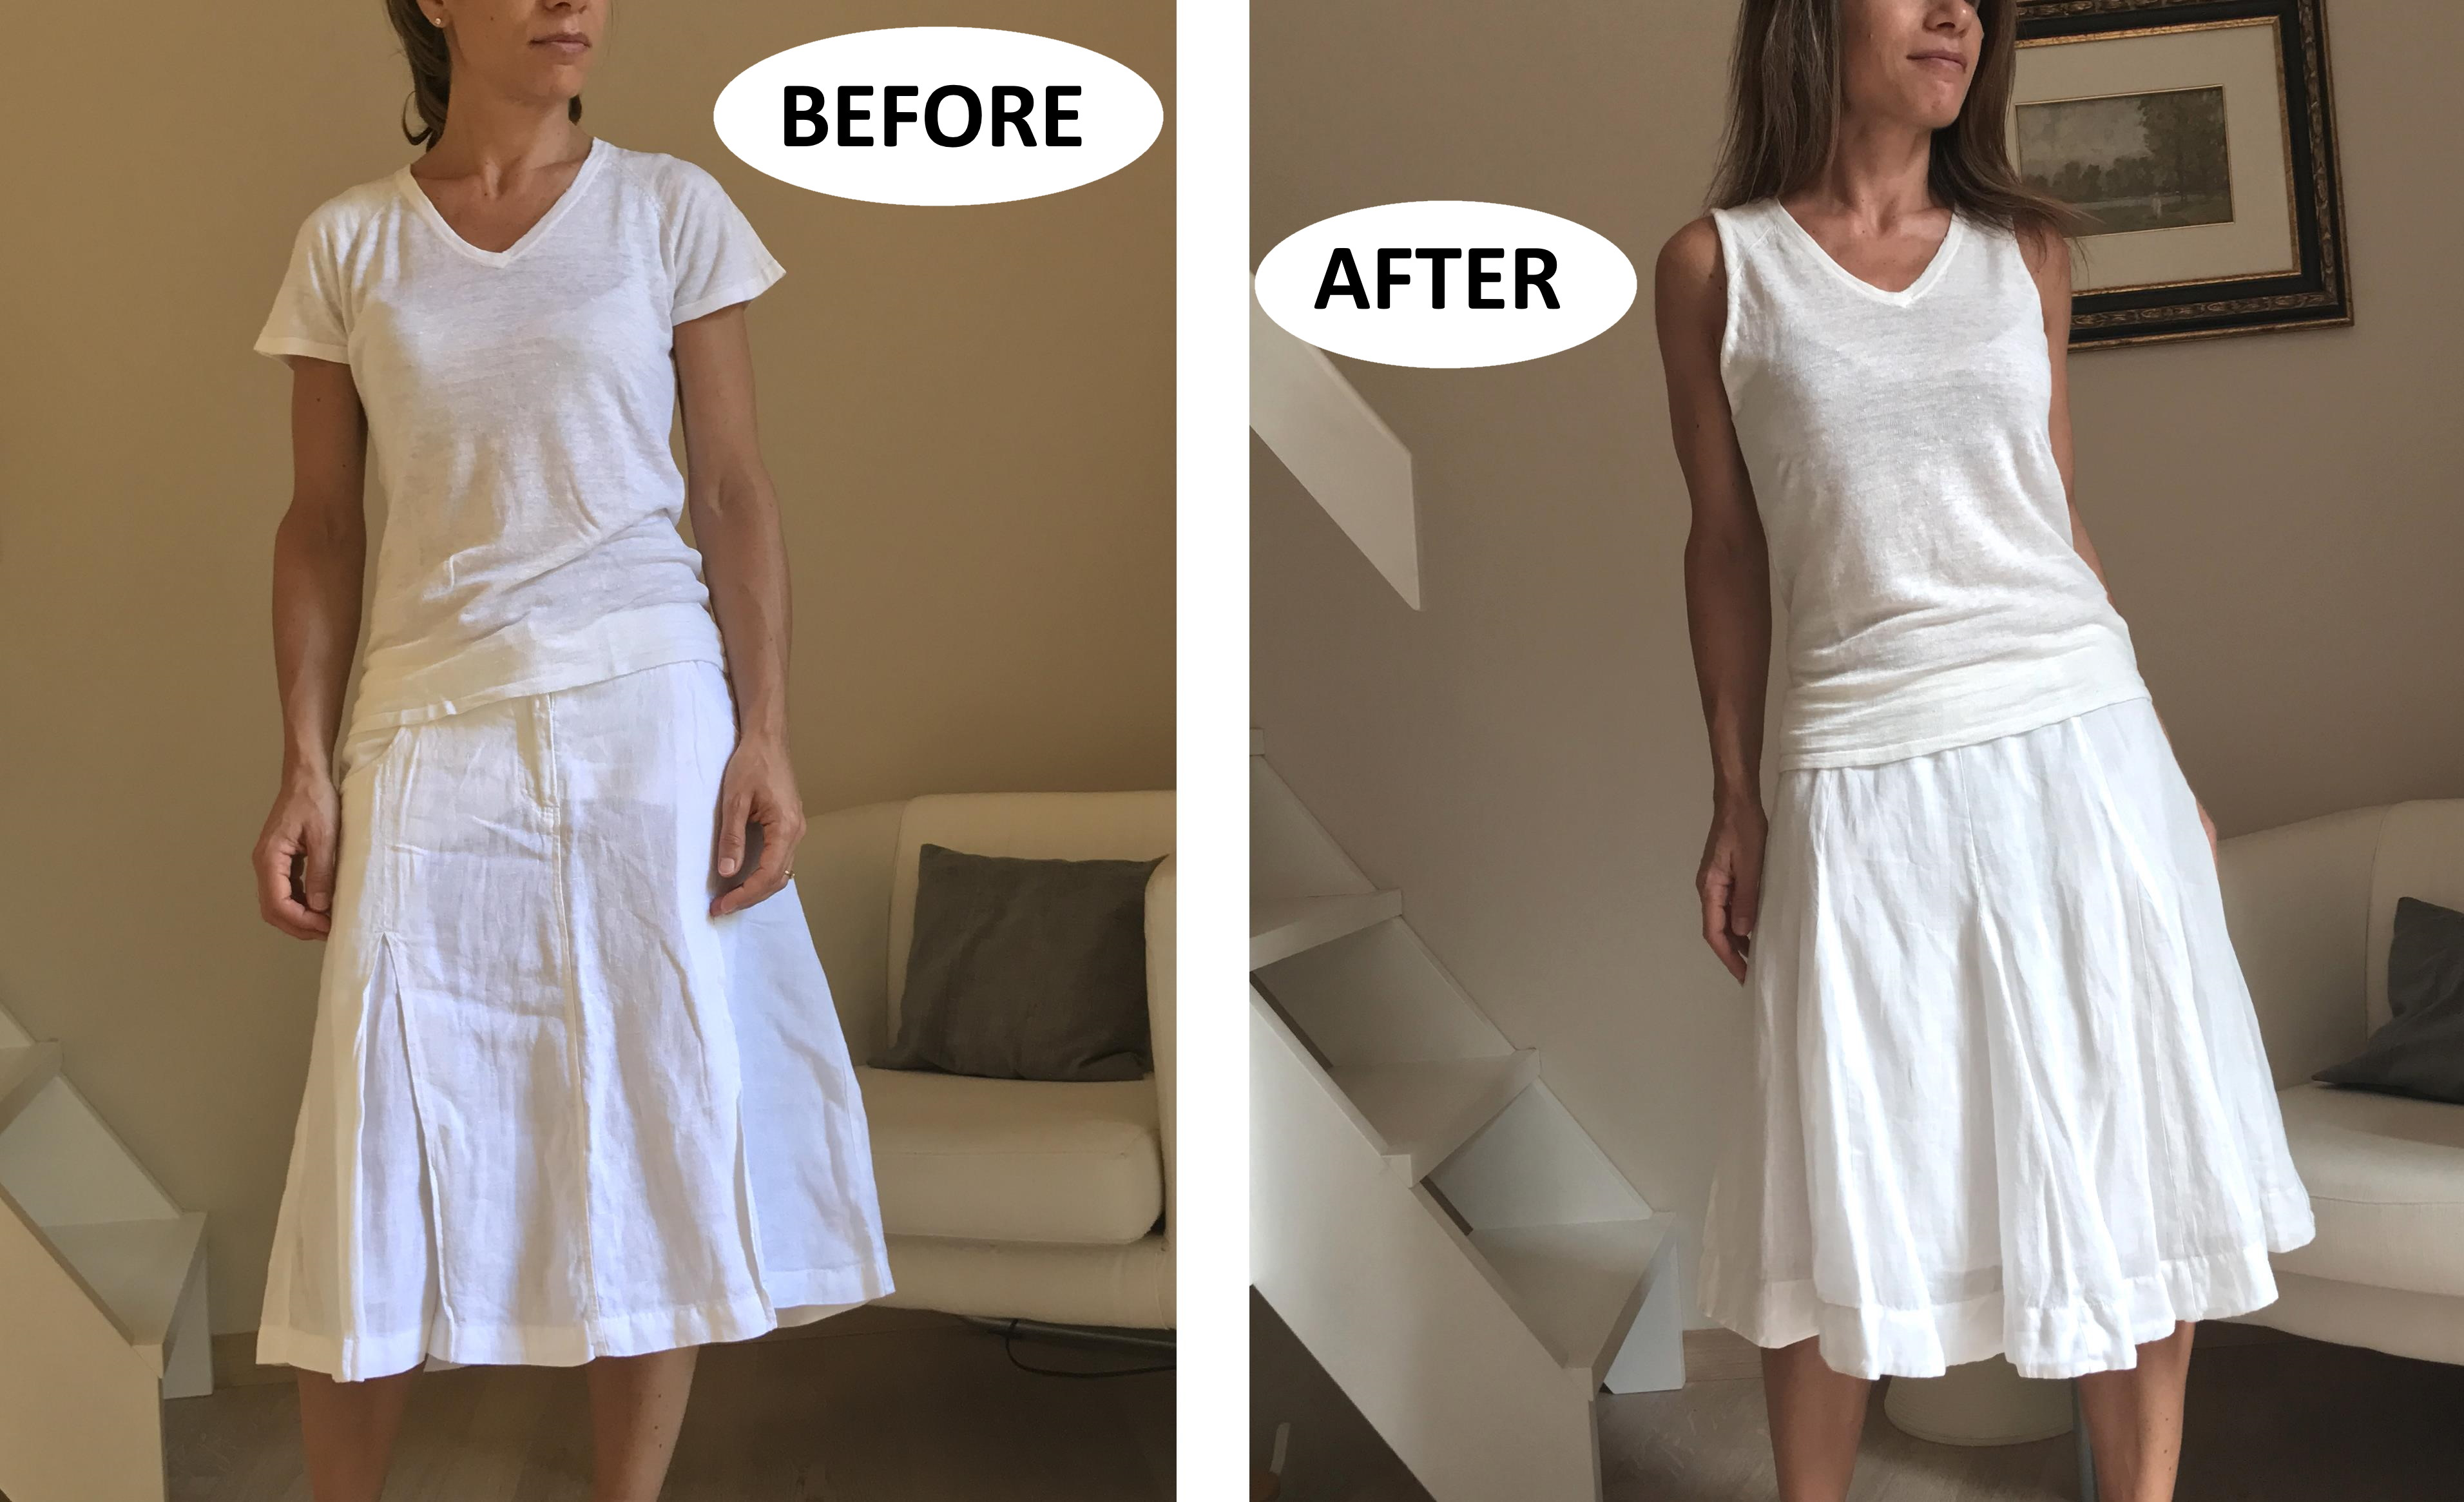 Garments makeover: a fun way to great style